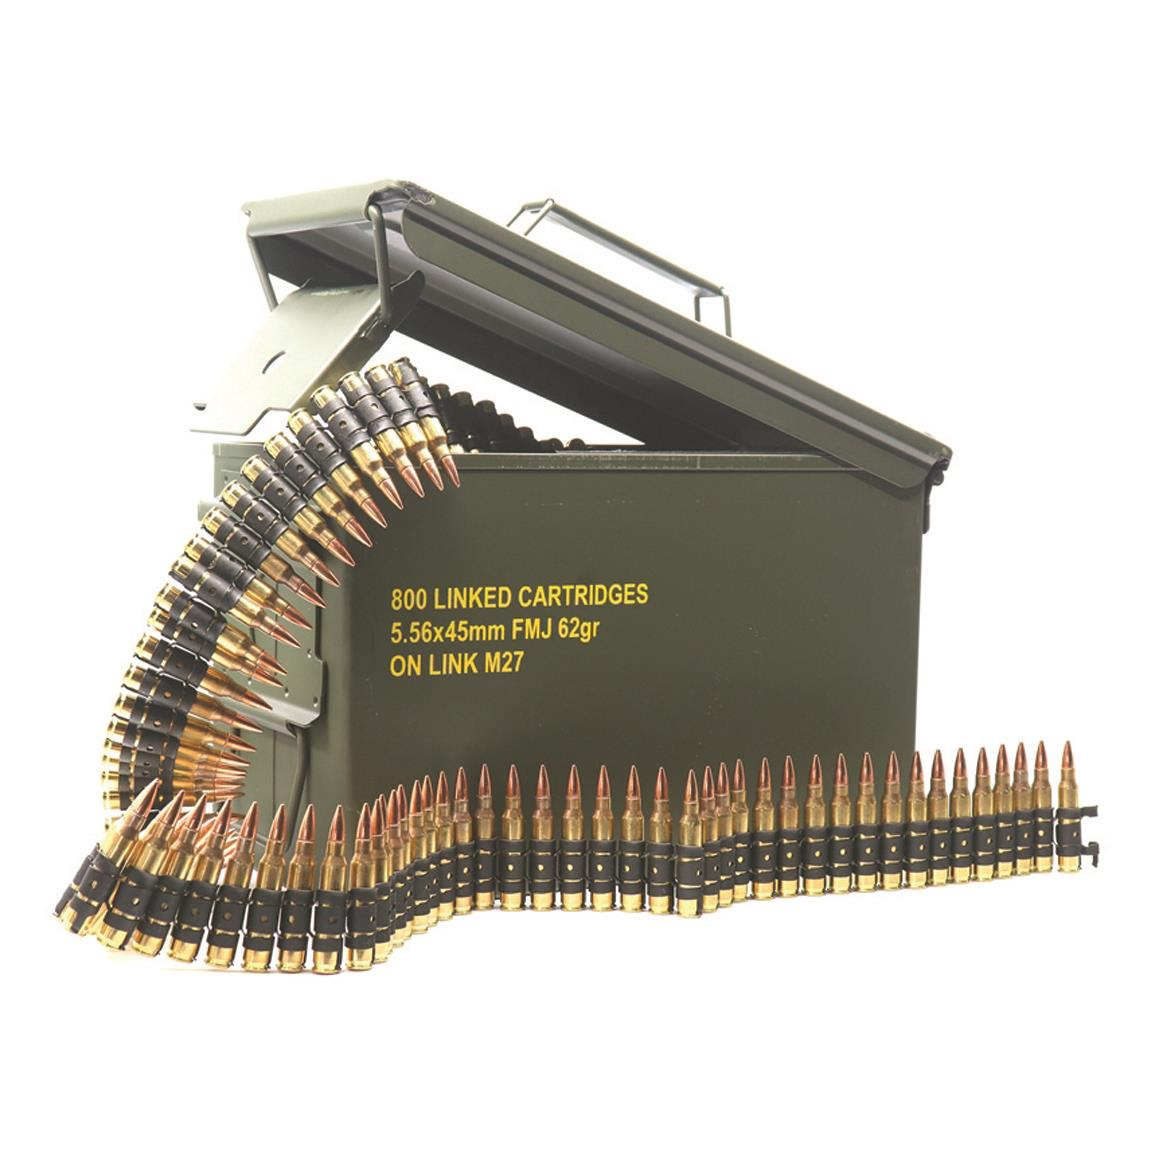 Magtech M27 Linked Ammo, 5.56x45mm, FMJ, 62 Grain, 800 Linked Rounds in Ammo Can